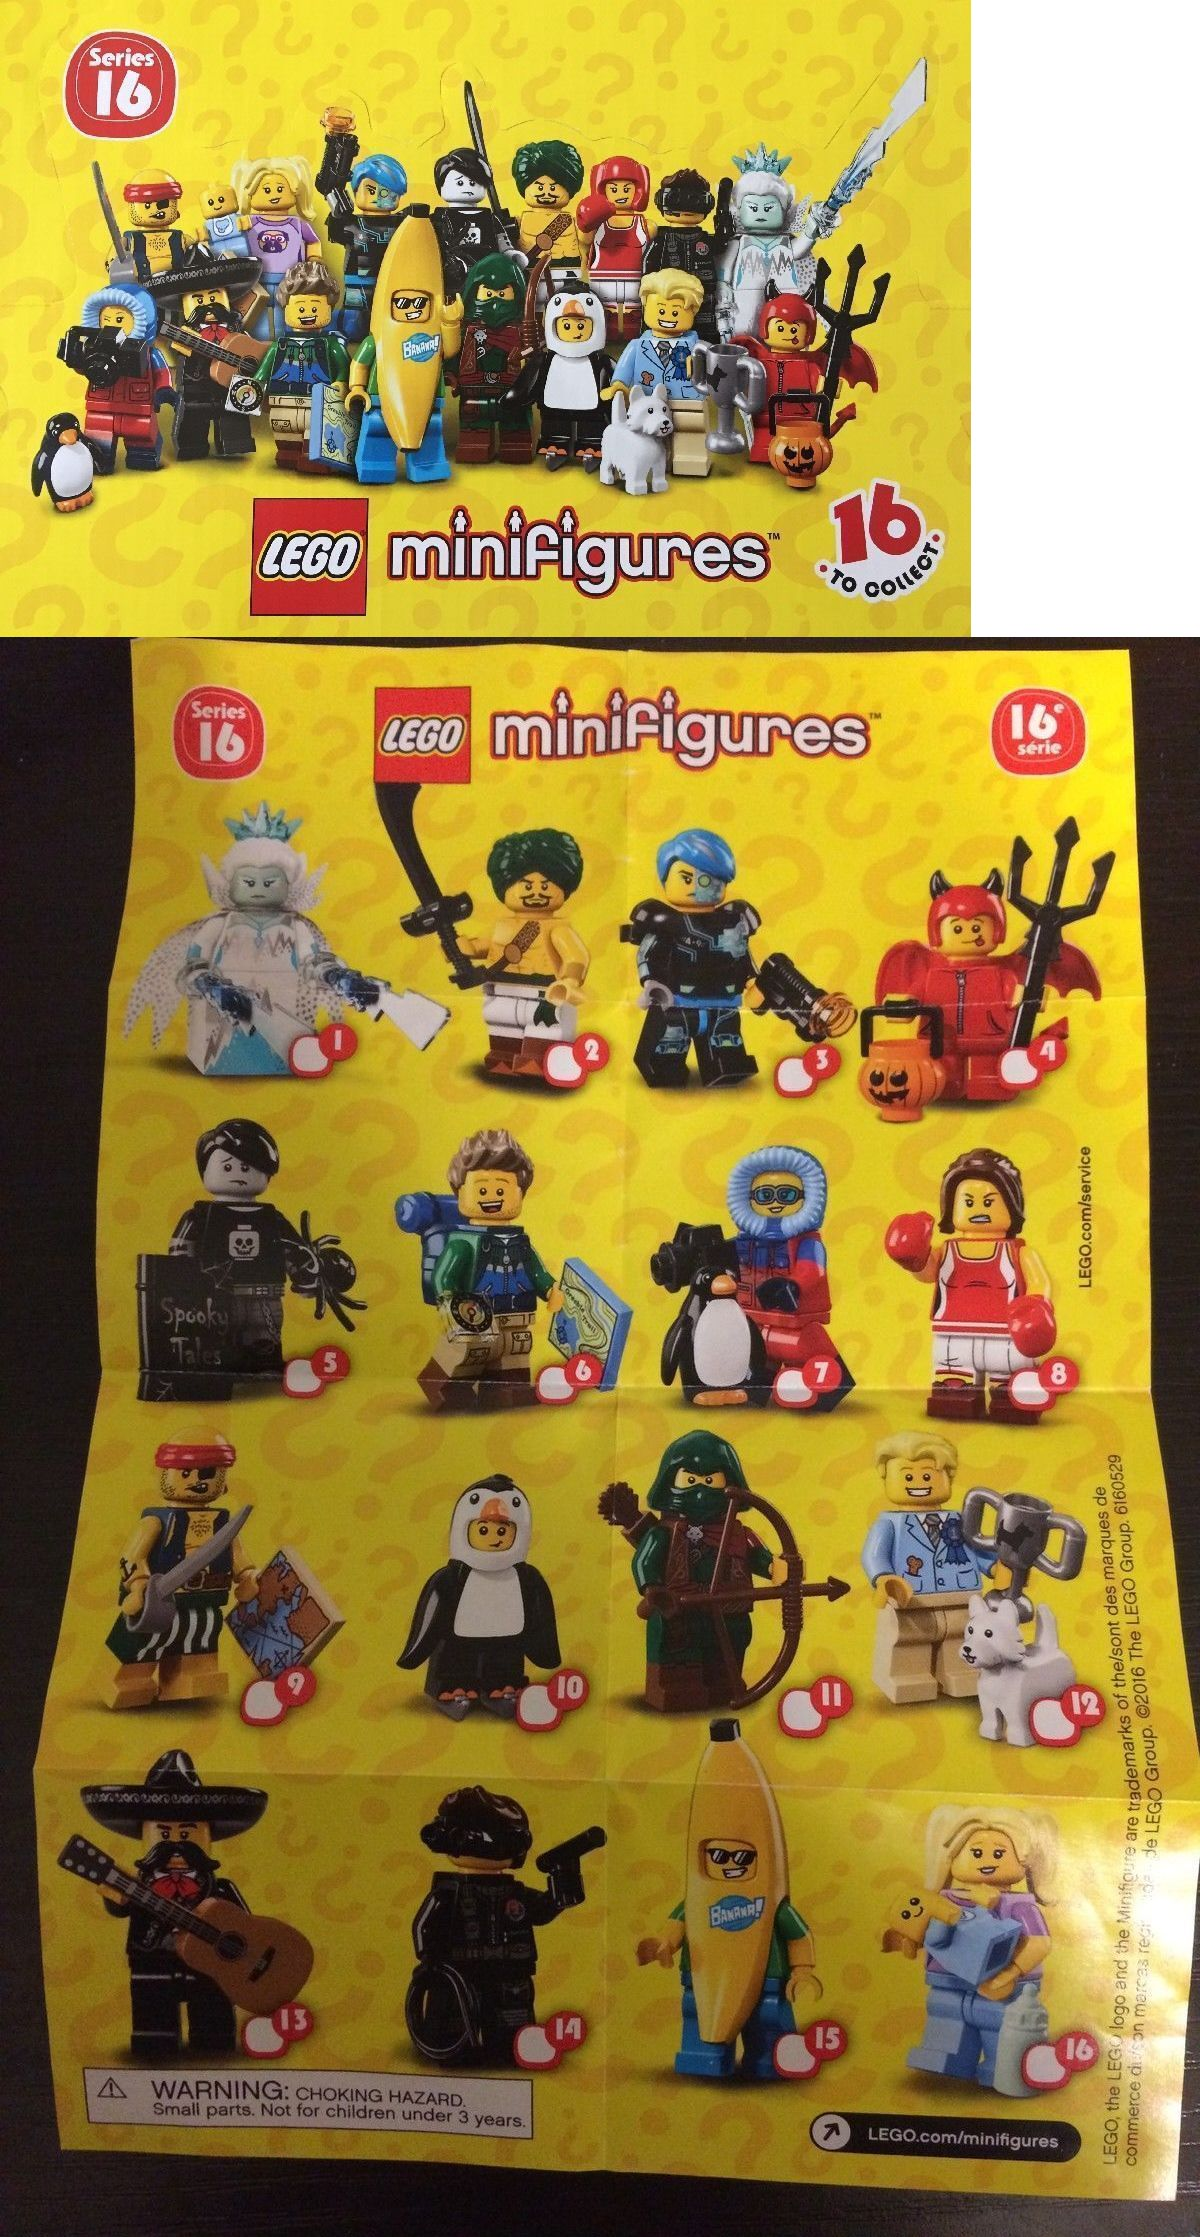 Genuine Lego 71013 Minifigure series 16 no 7 Wildlife Photograph Clearance Sale